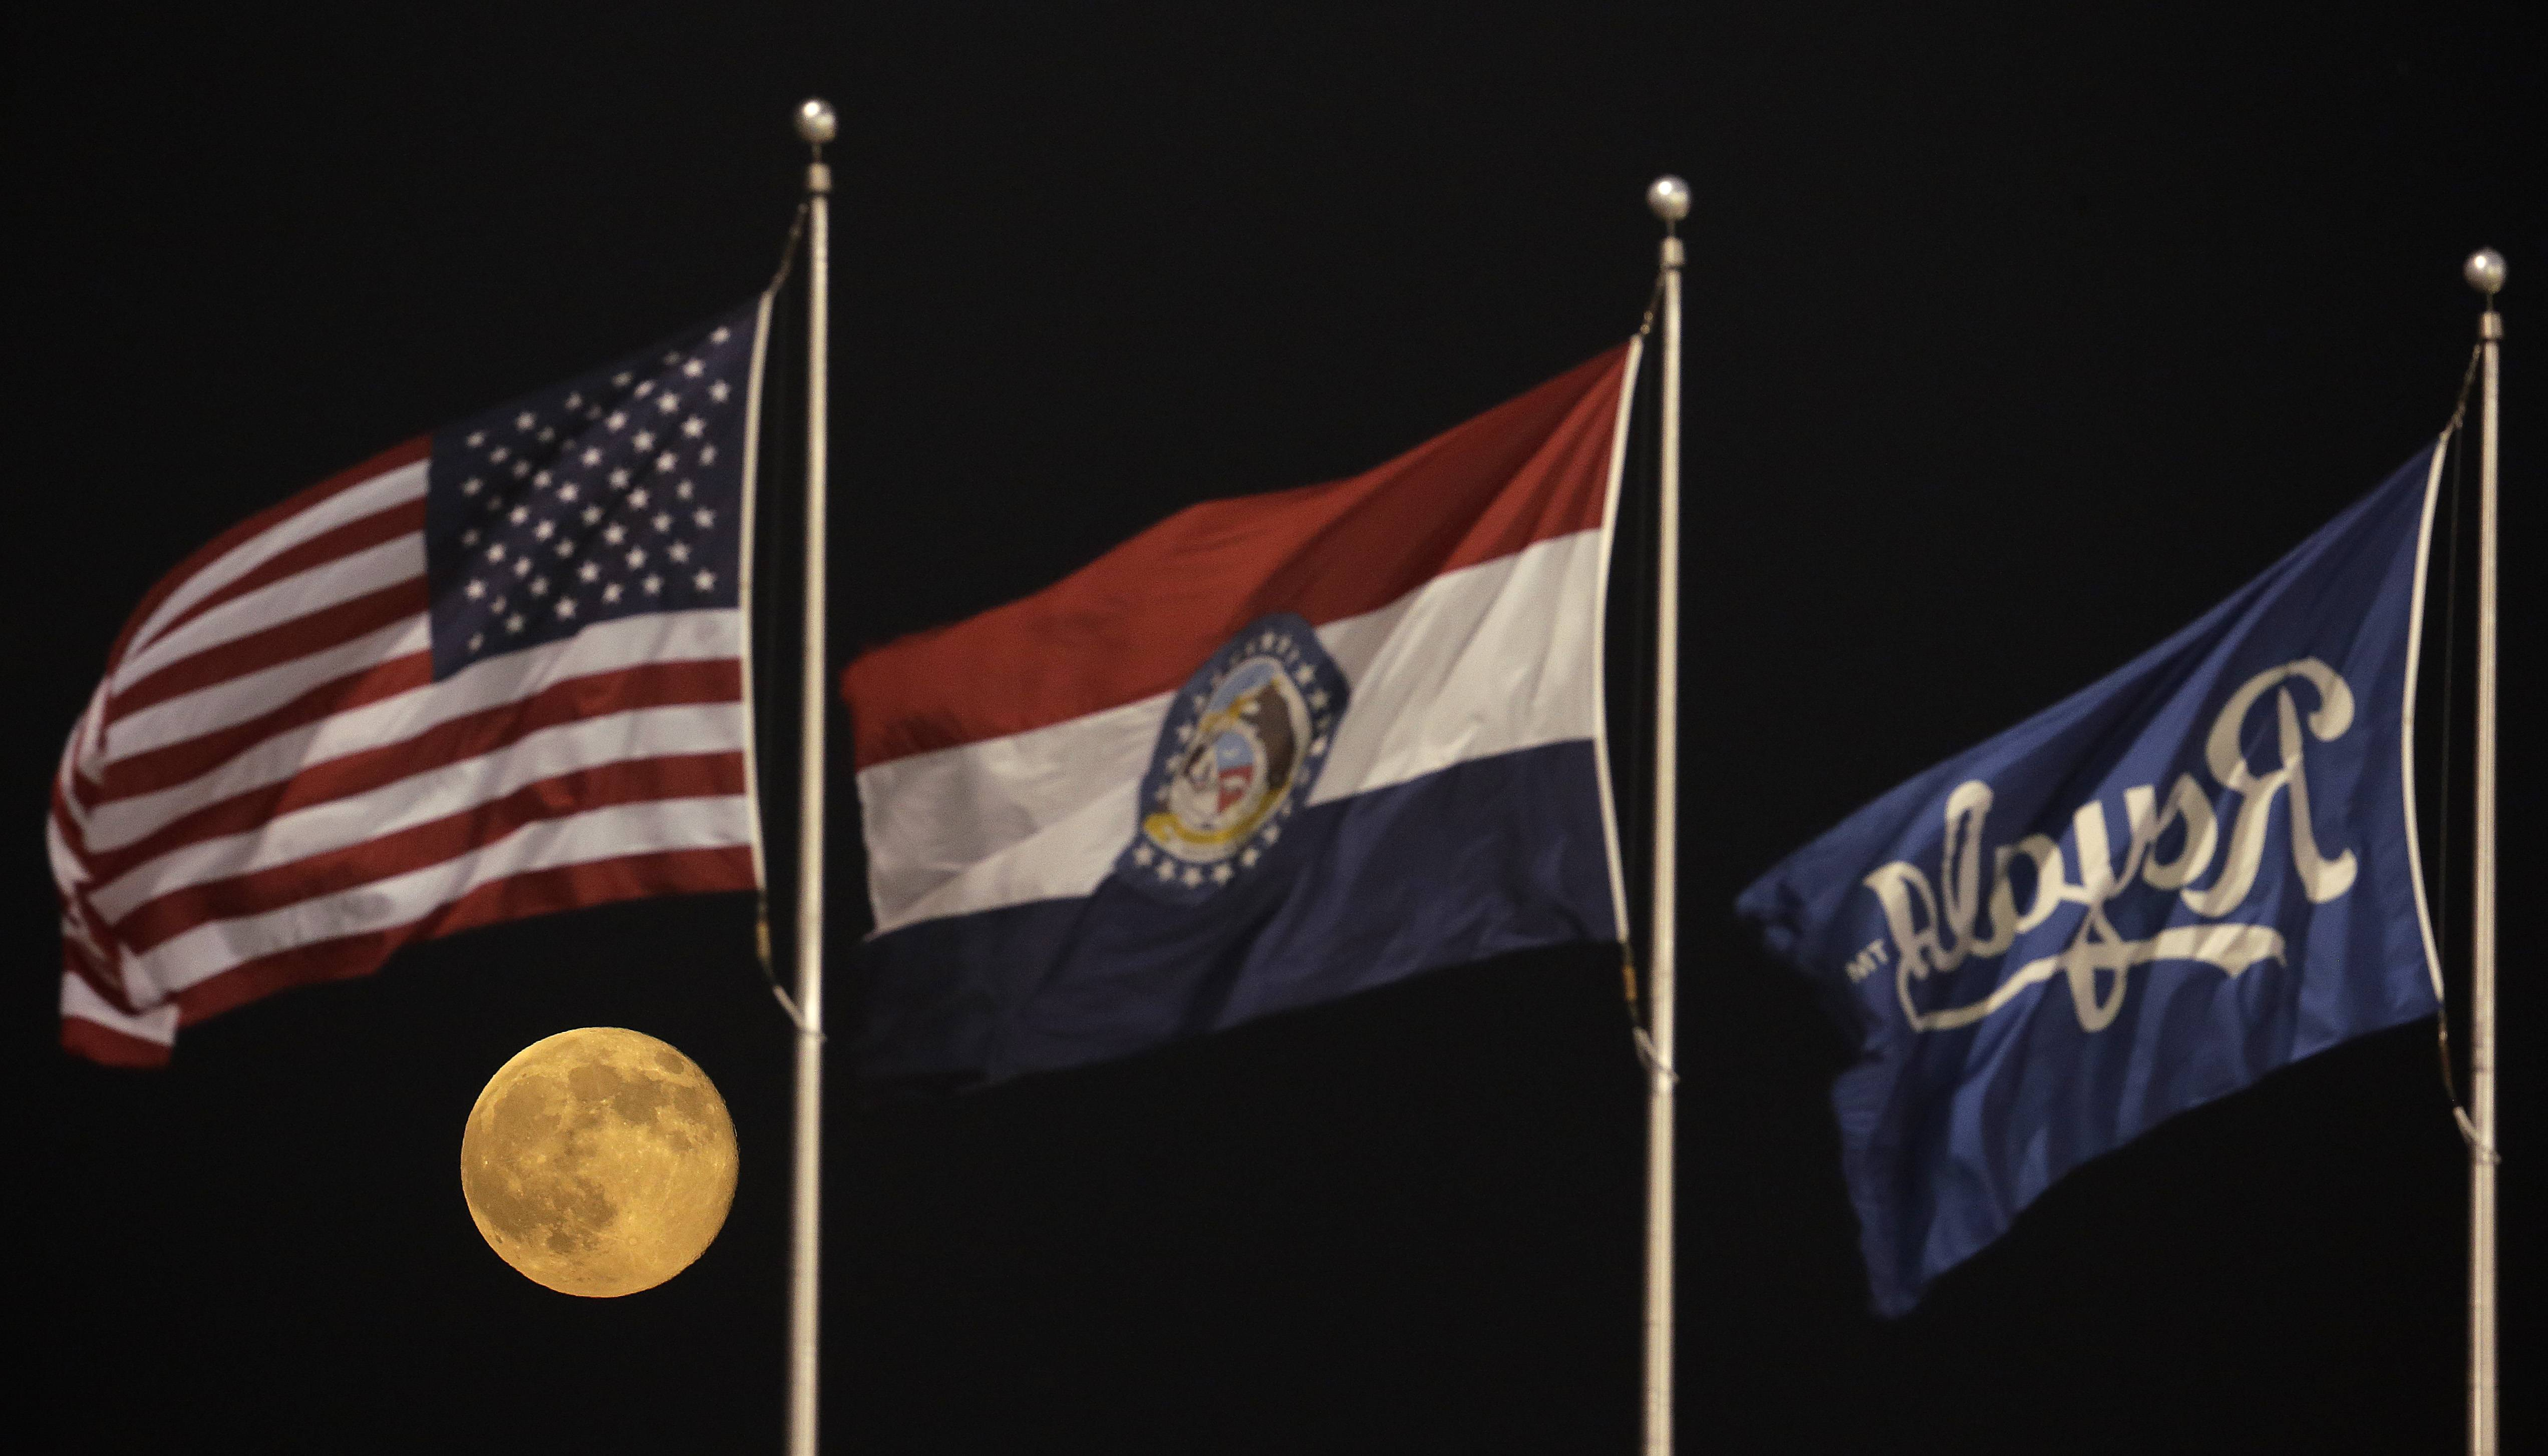 "A perigee moon, also known as a supermoon, rises beyond flags at Kauffman Stadium during a baseball game between the Kansas City Royals and the Detroit Tigers, Saturday, July 12, 2014. The phenomenon, which scientists call a ""perigee moon,"" occurs when the moon is near the horizon and appears larger and brighter than other full moons."